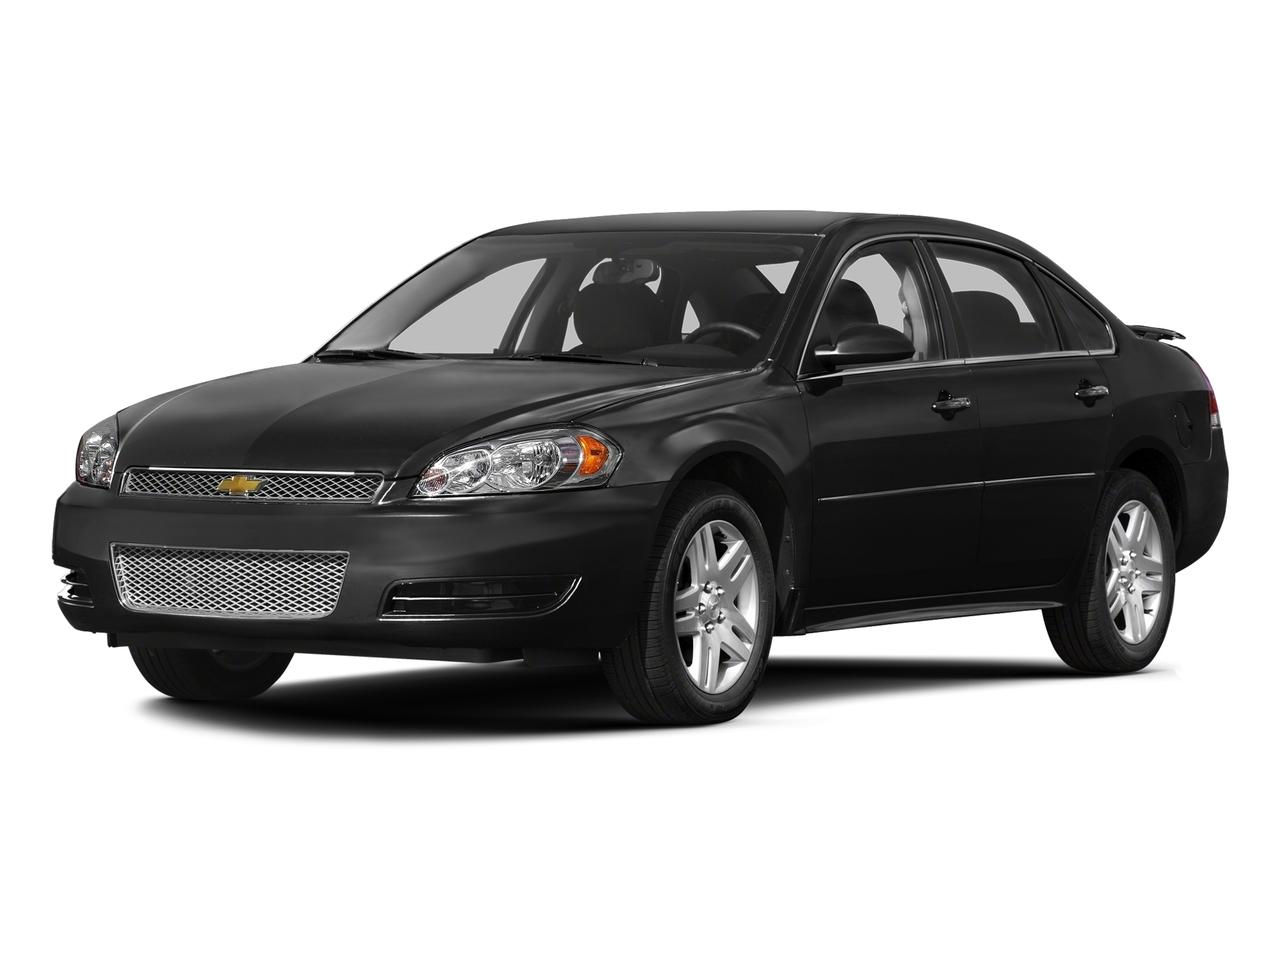 2016 Chevrolet Impala Limited Vehicle Photo in ELYRIA, OH 44035-6349